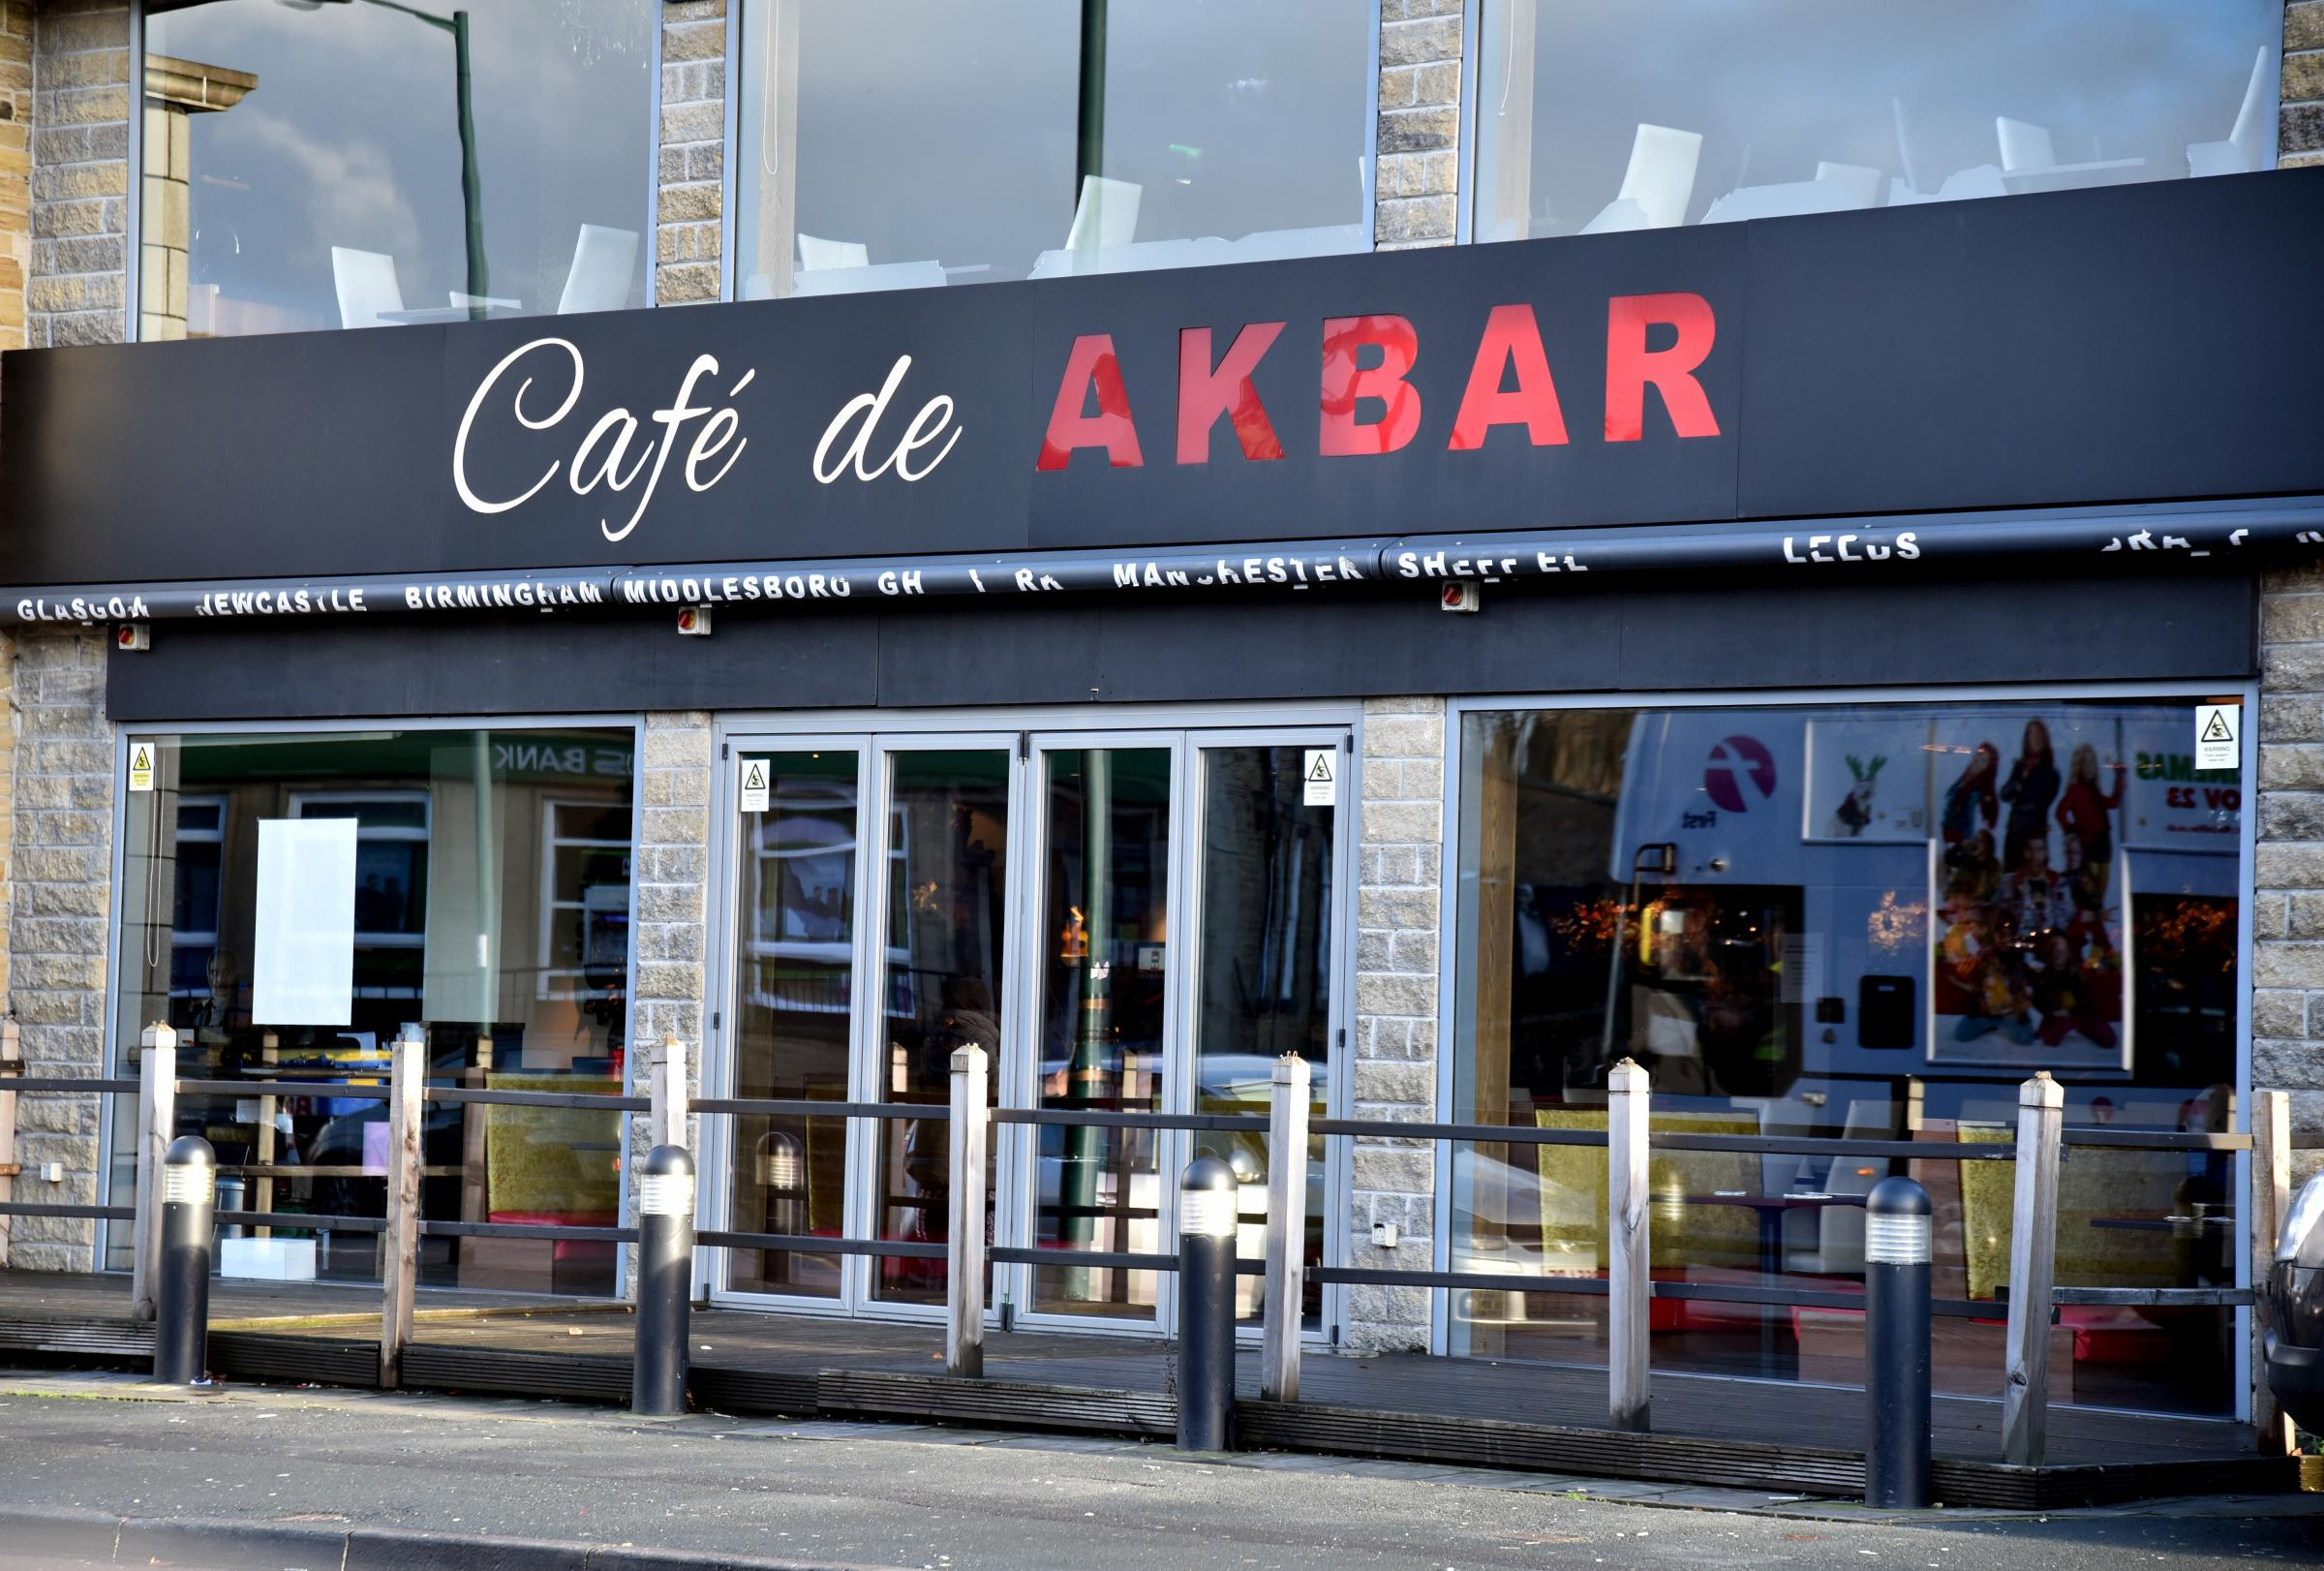 Amin said he went to a meeting at Café de Akbar in Leeds Road, Bradford, and said his presence would be a 'comfort' to Yassar.